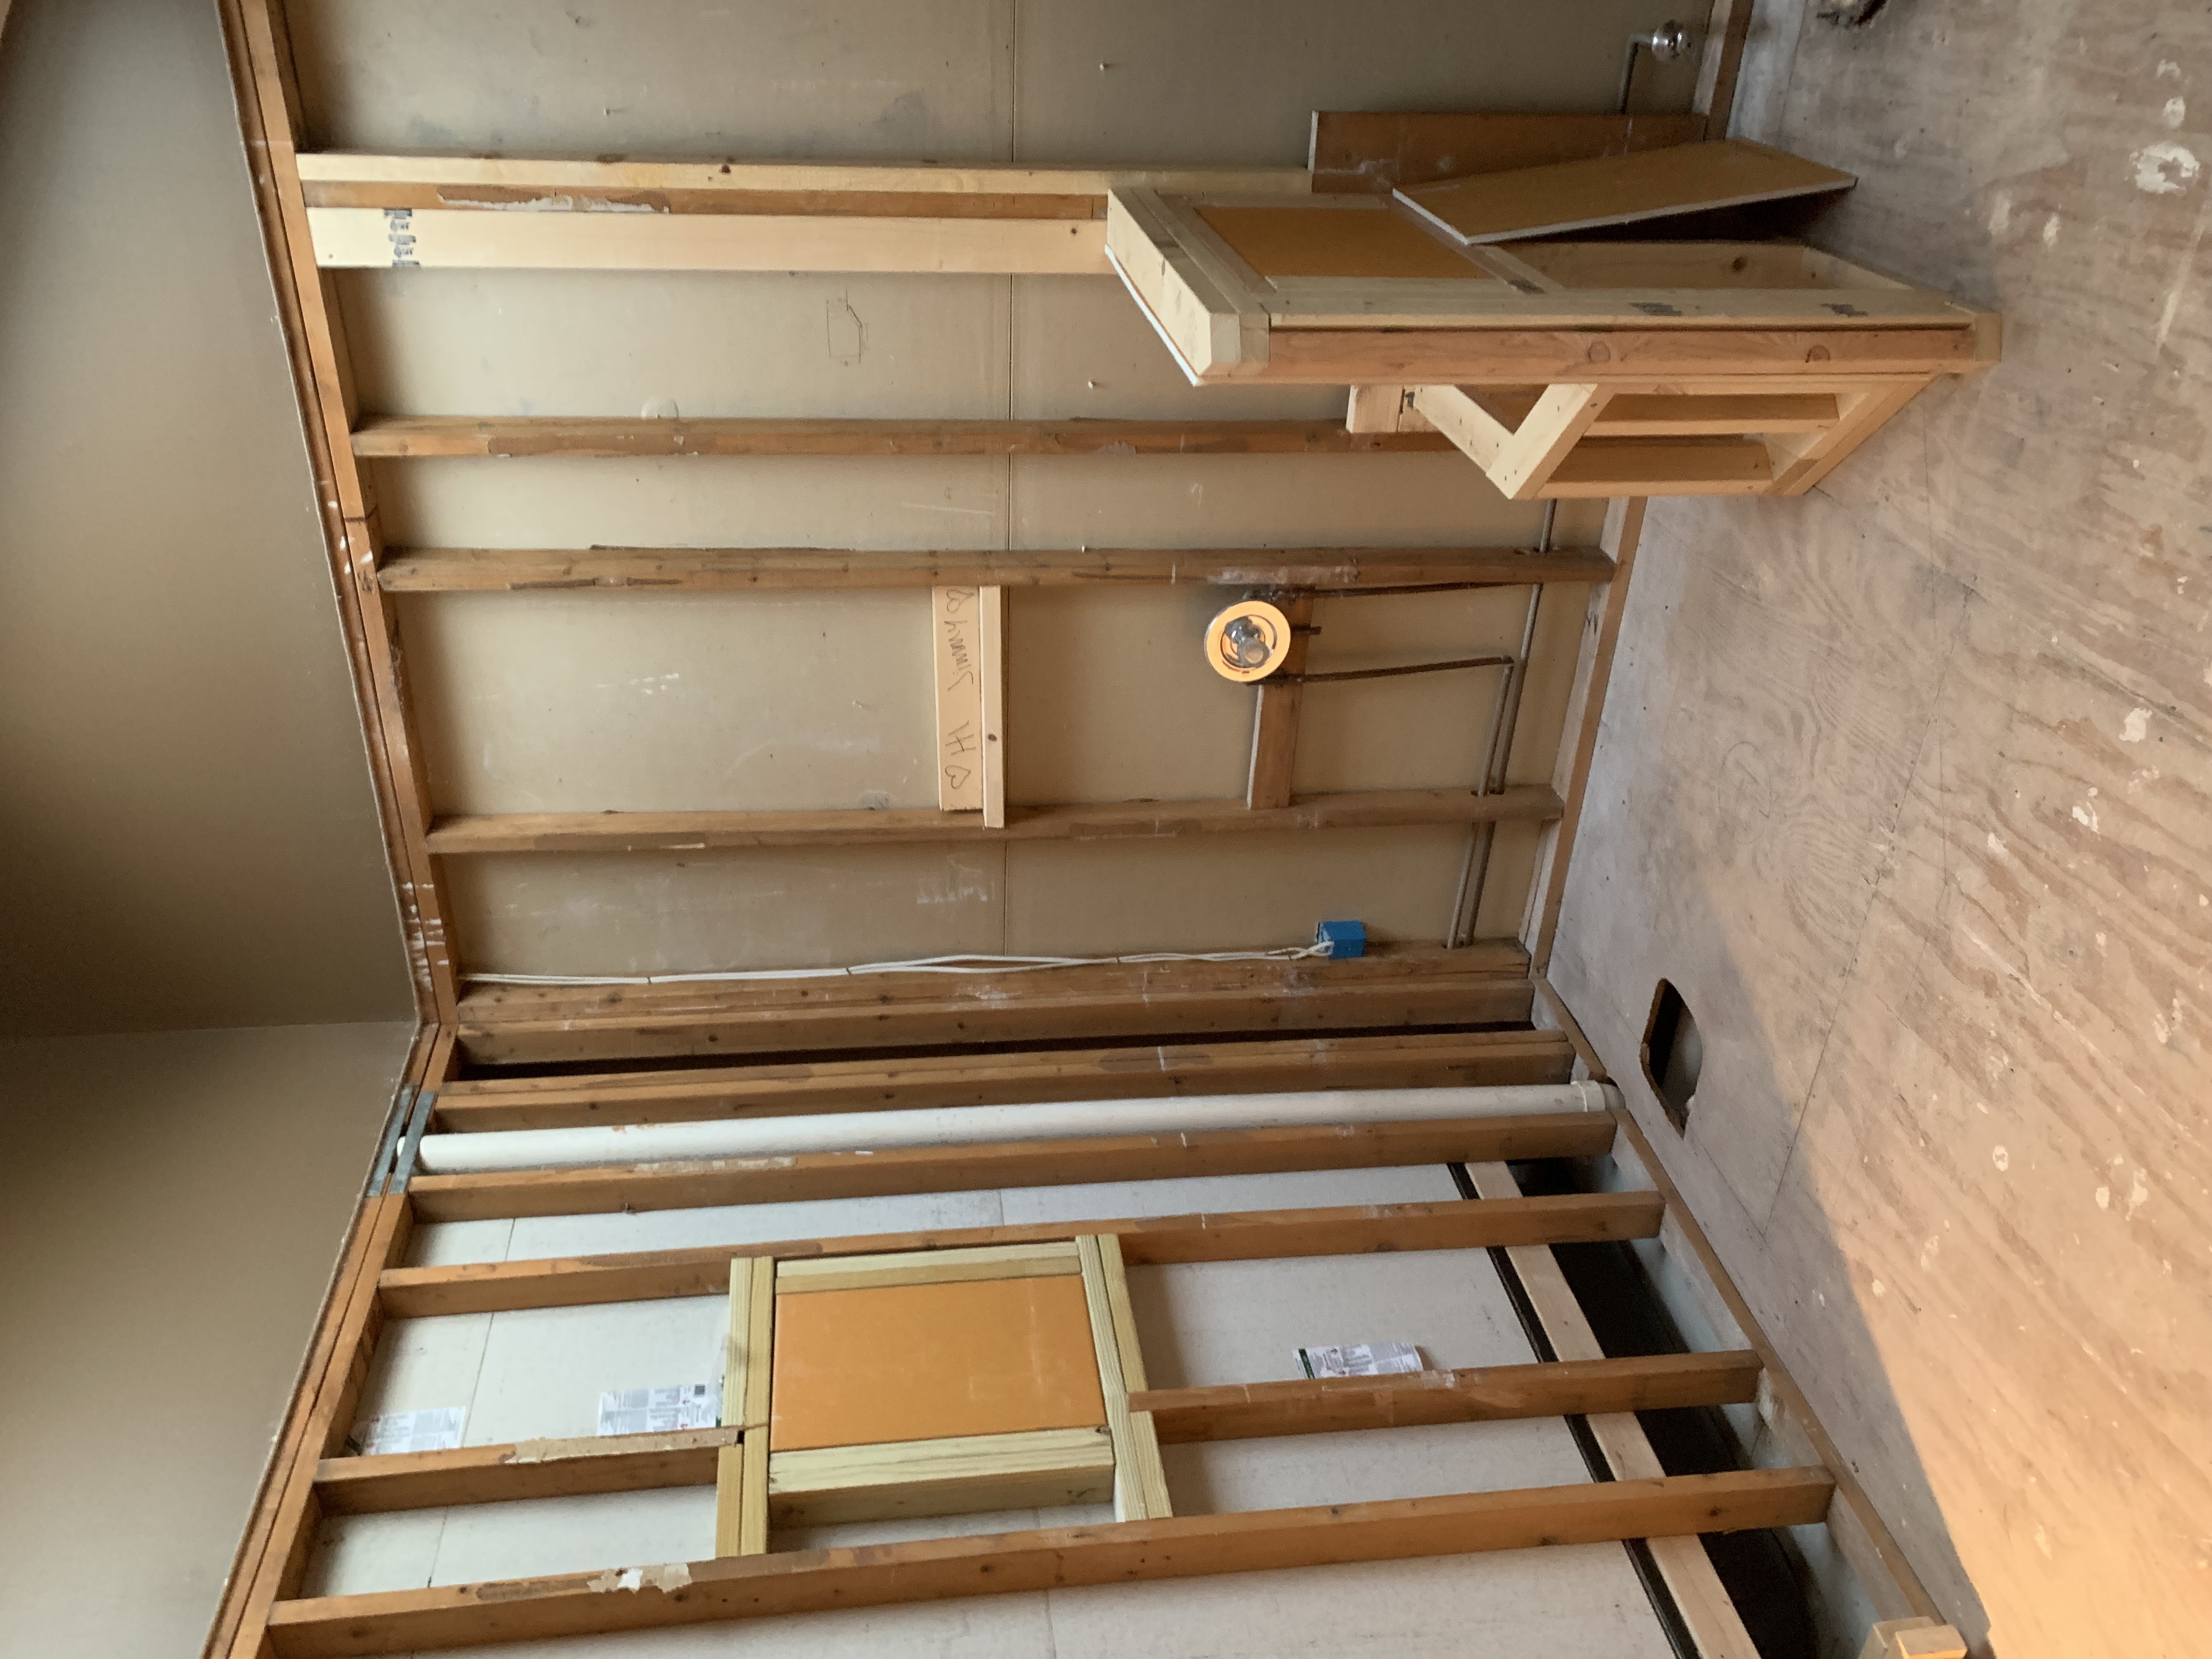 The New Shower Framed Out